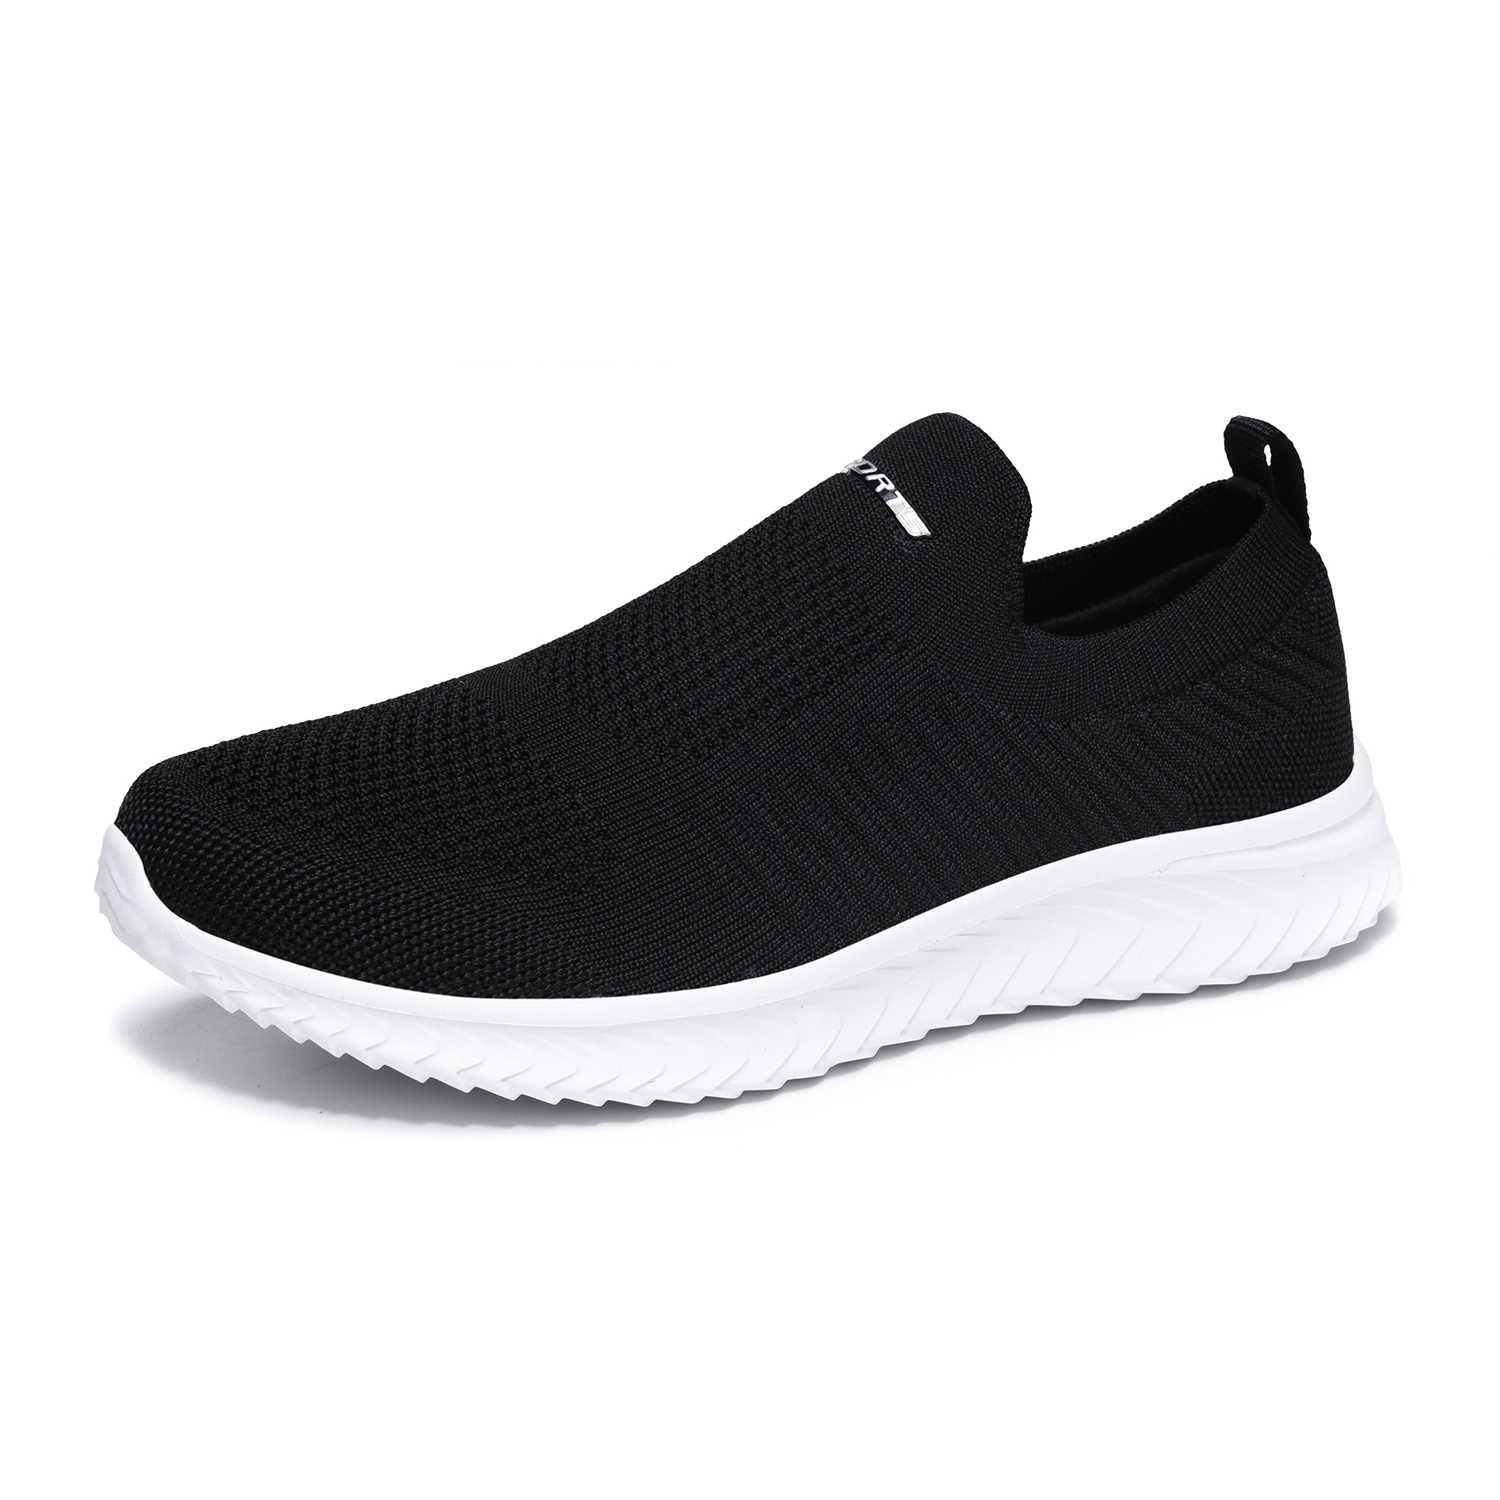 Sneakers Men Running Shoes Comfortable Flyknit Slip On Shoes Couple Outdoor Sports Sneakers Big Size 36-46# Jogging Trainers